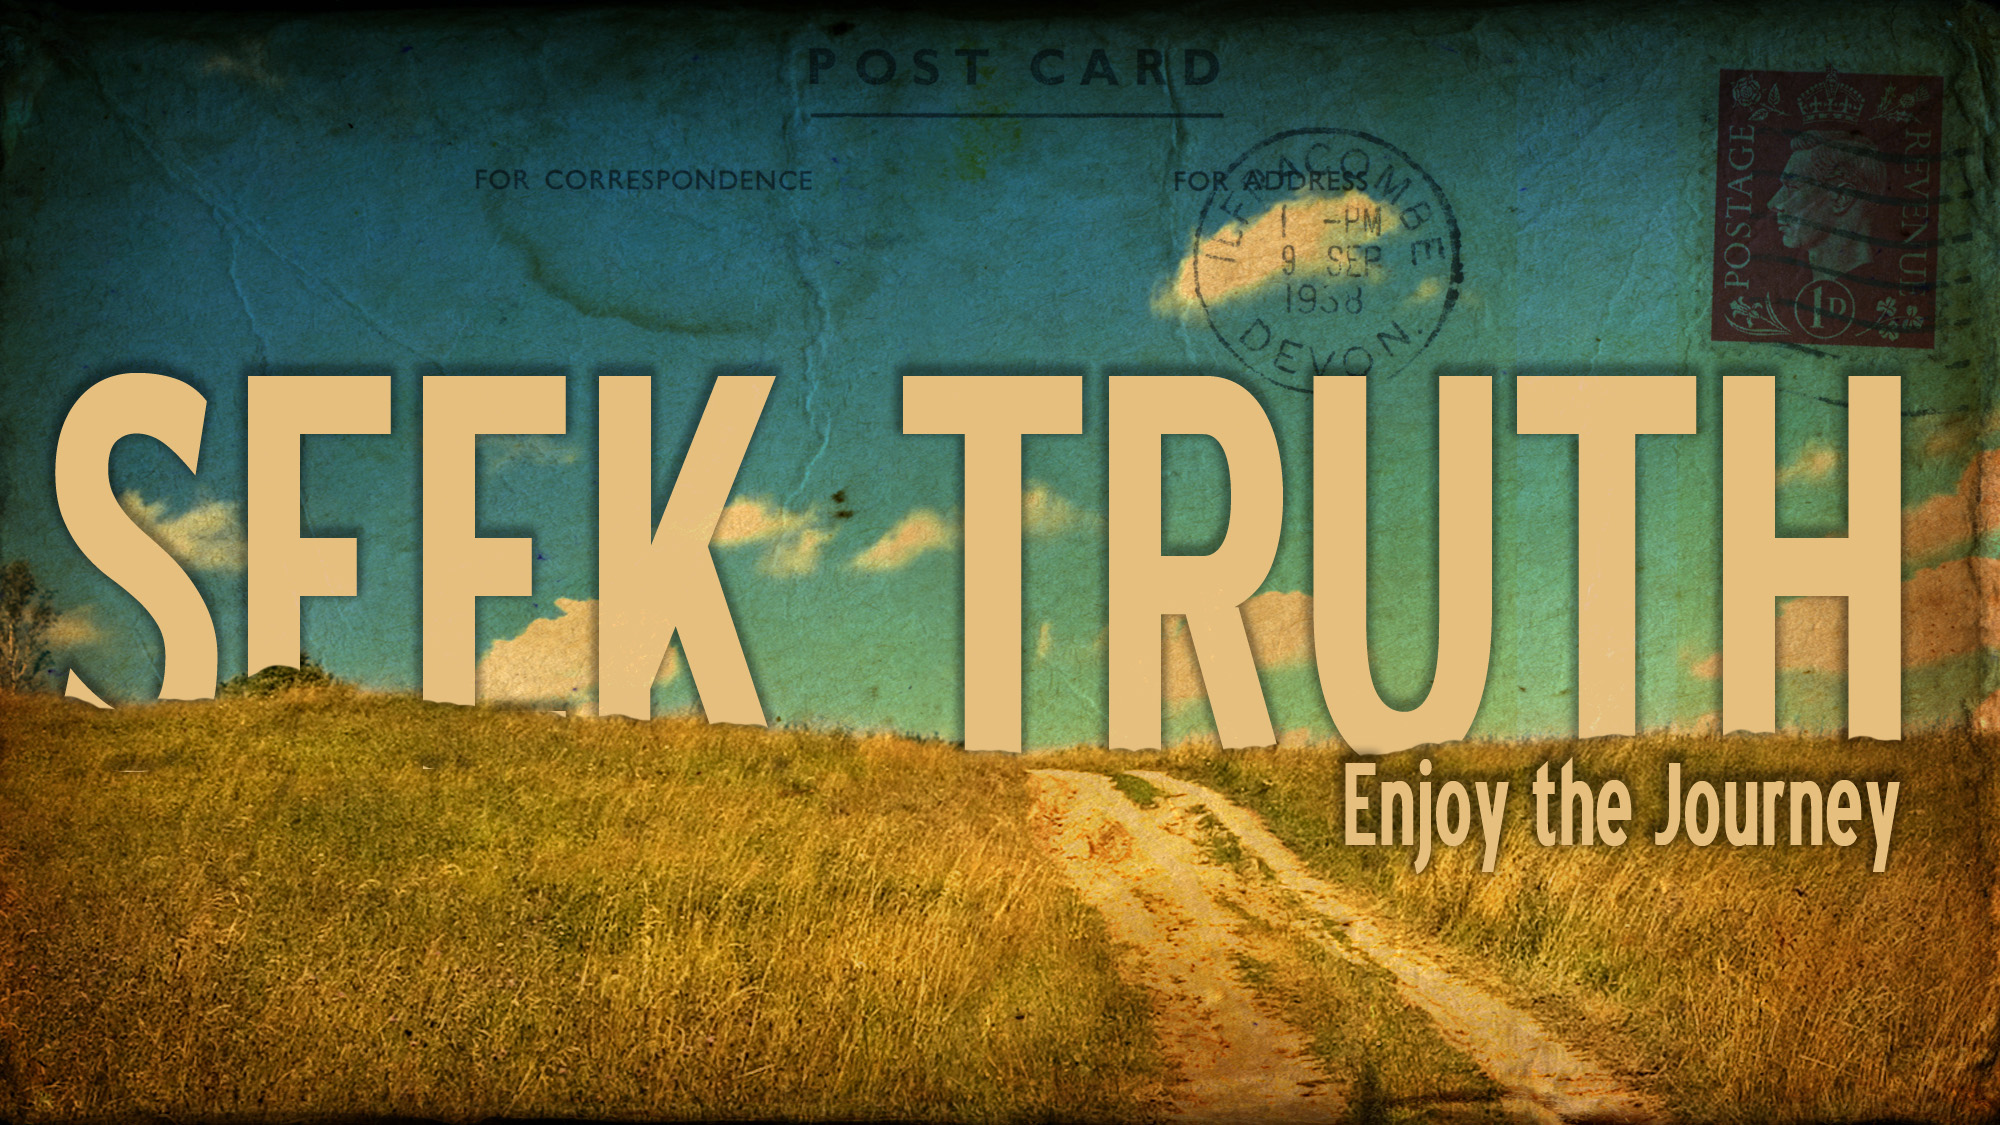 http://joshfults.files.wordpress.com/2012/06/seek-truth.jpg